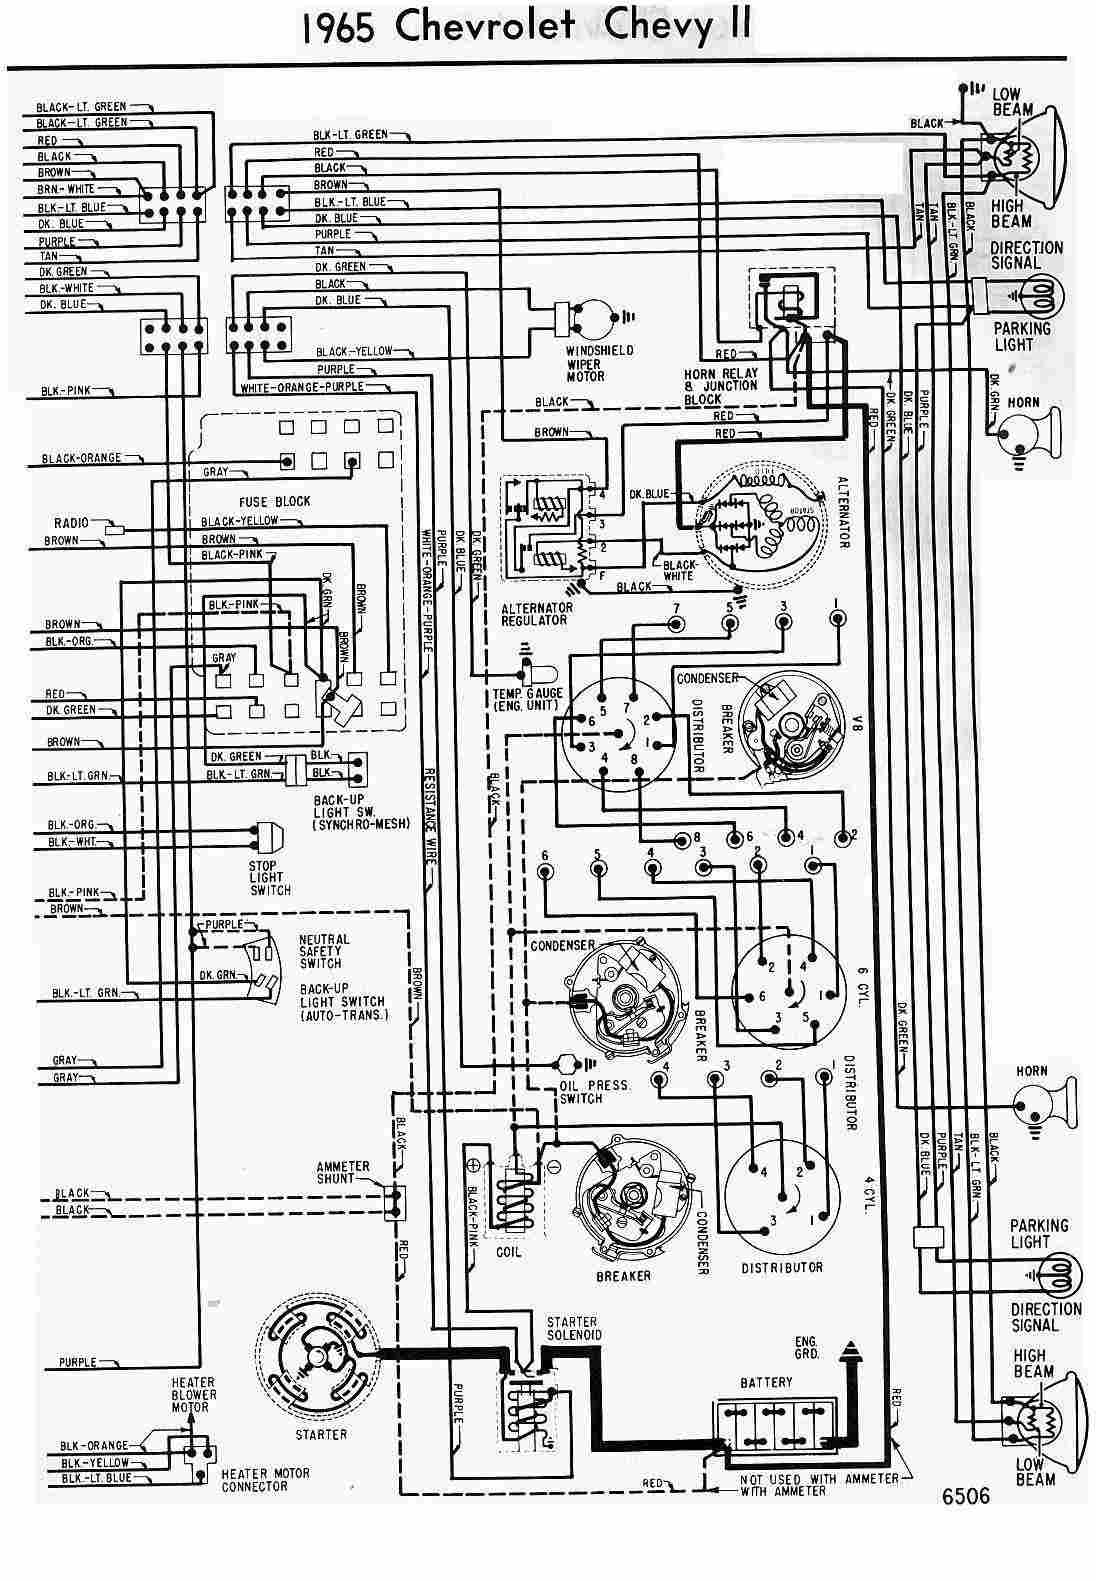 hight resolution of 1966 chevelle ss engine harness diagram wiring diagram todays 1967 fairlane wiring diagram 1966 chevelle wiring